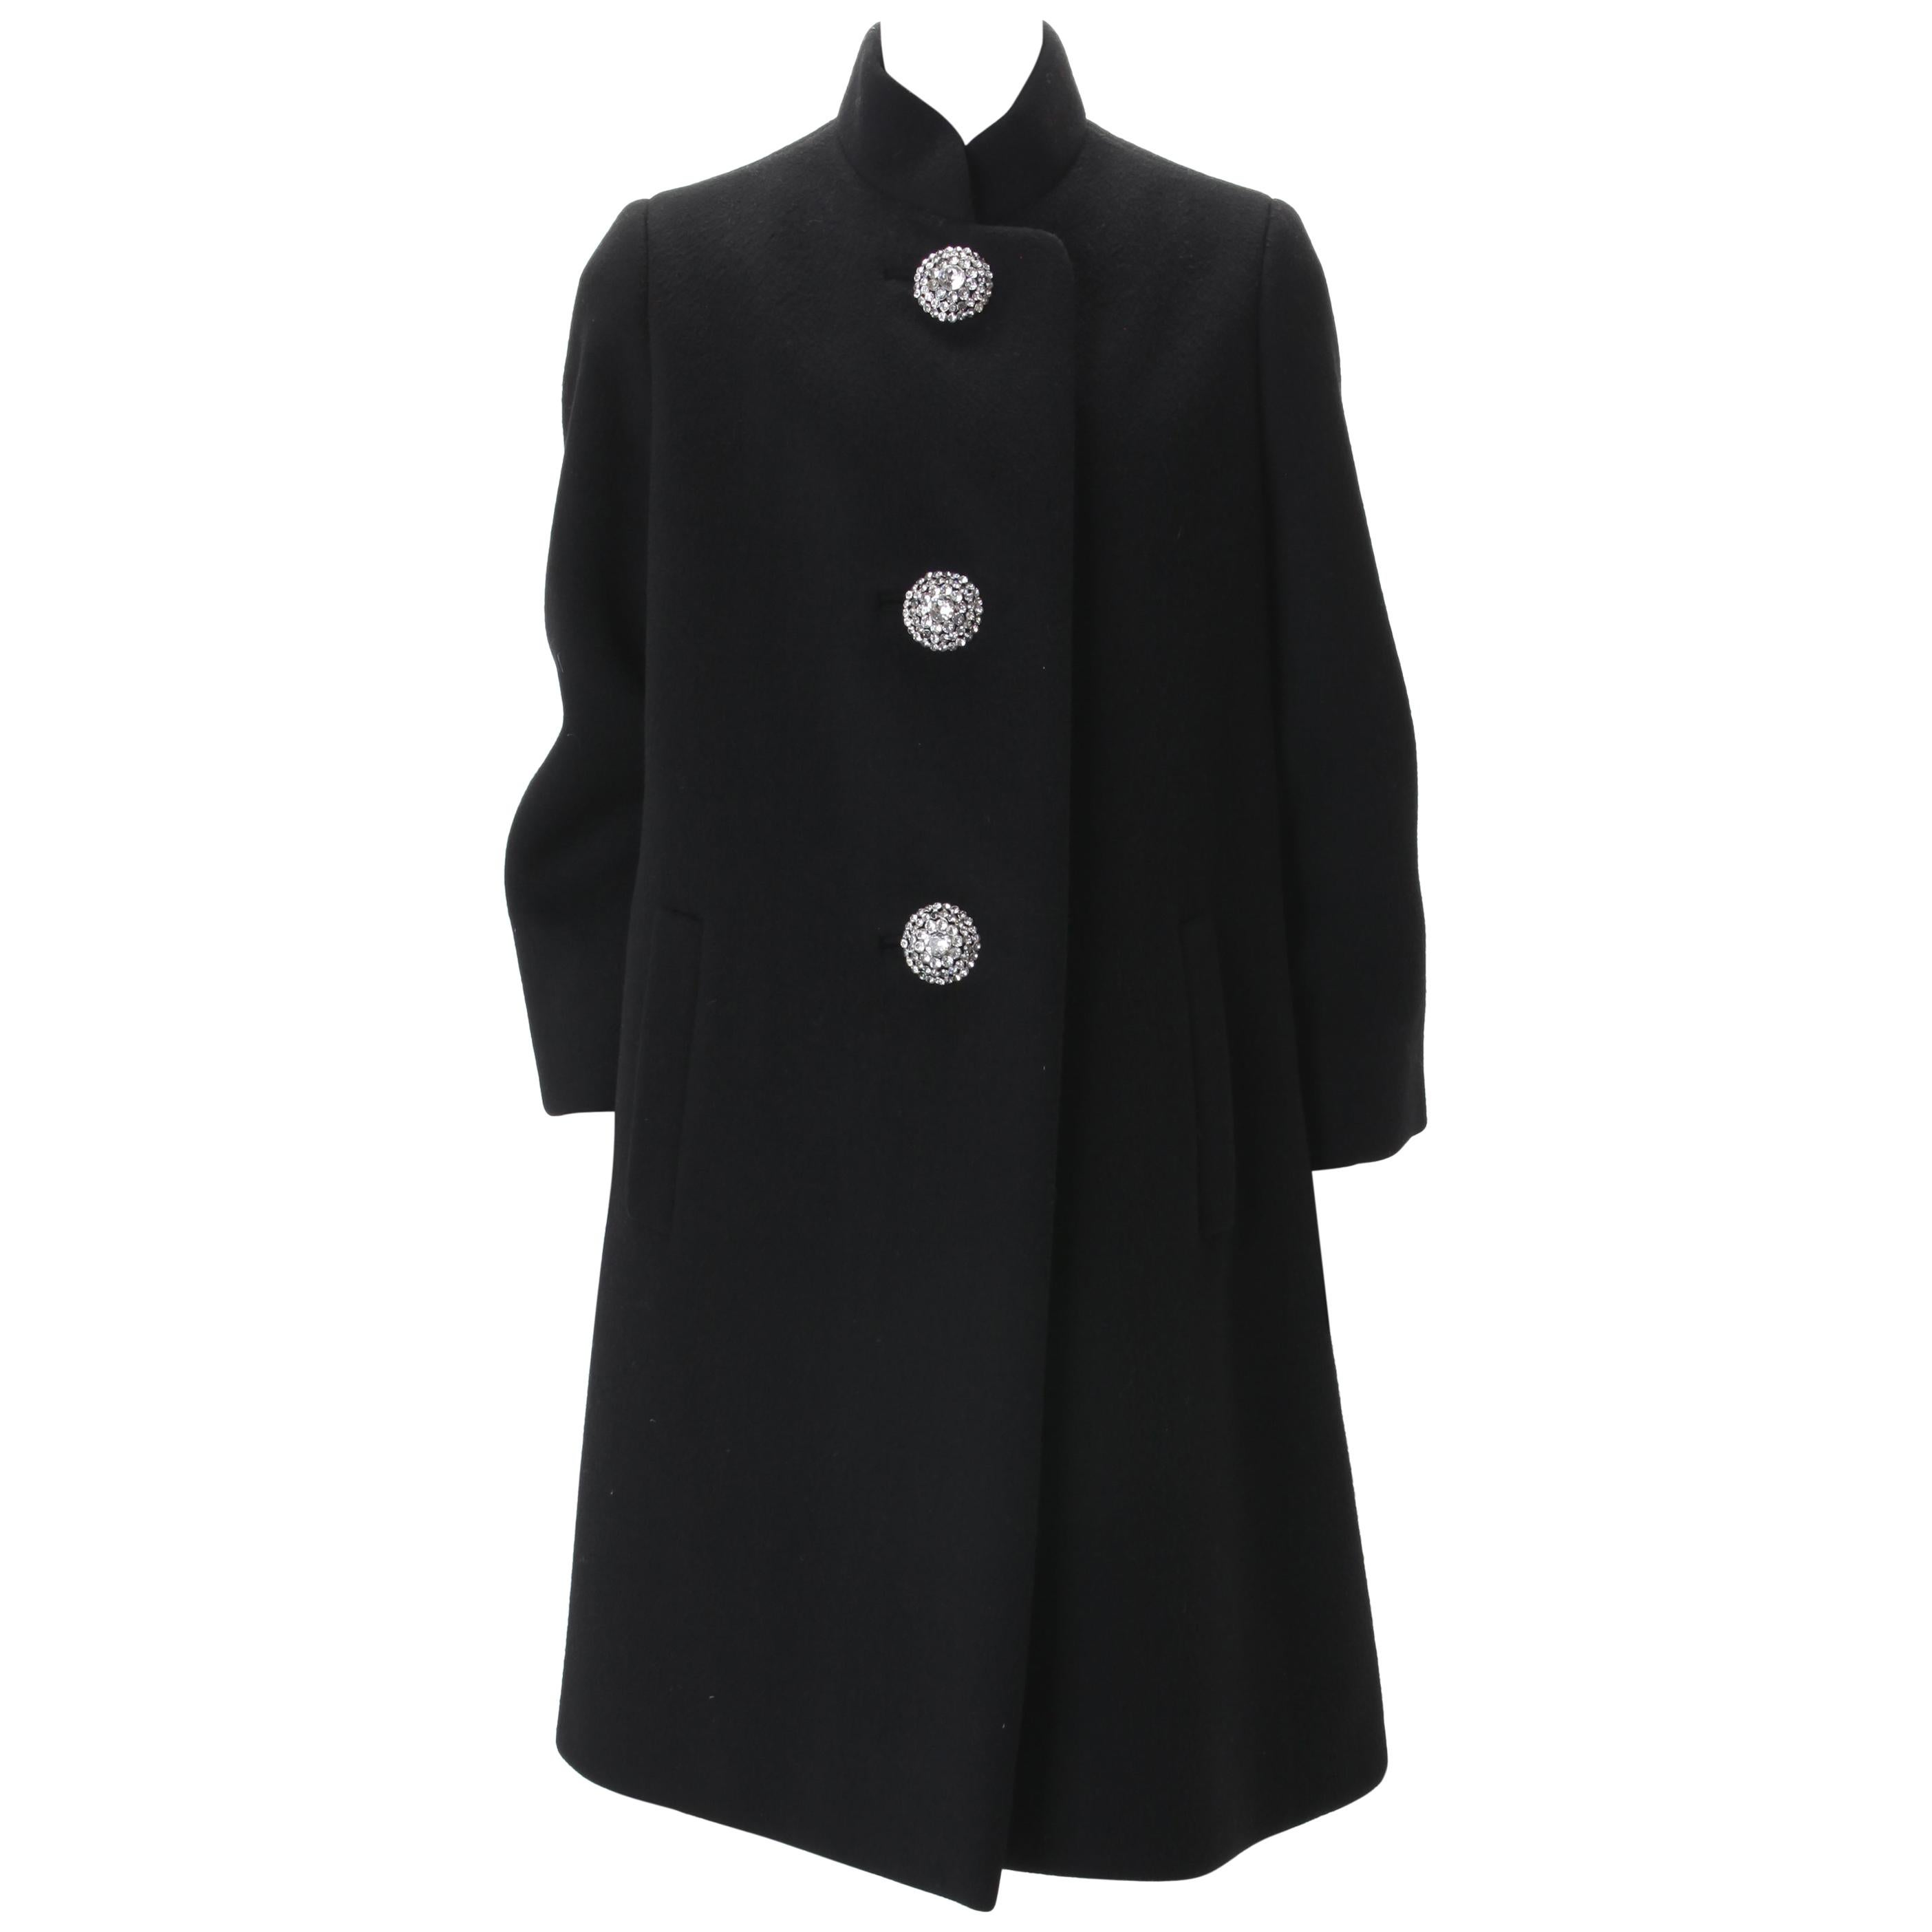 Norman Norell Couture Black Wool Coat with Rhinestone Encrusted Buttons, c.1960s